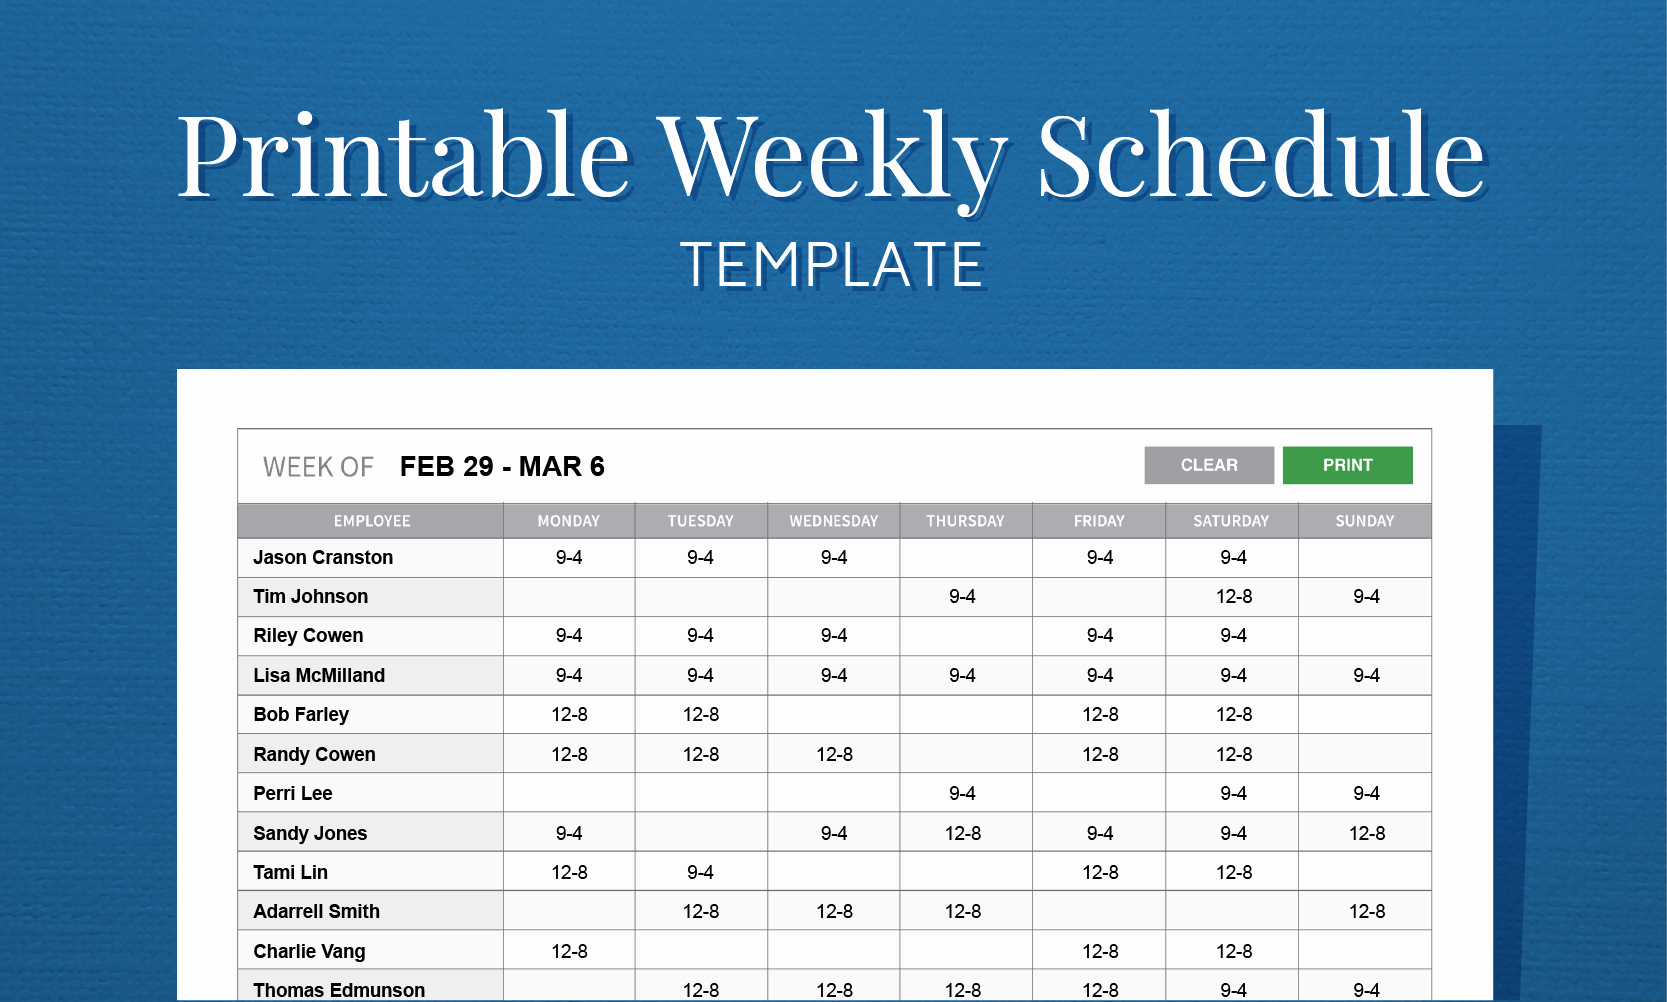 Weekly Employee Schedule Template Excel Luxury Free Printable Work Schedule Template for Employee